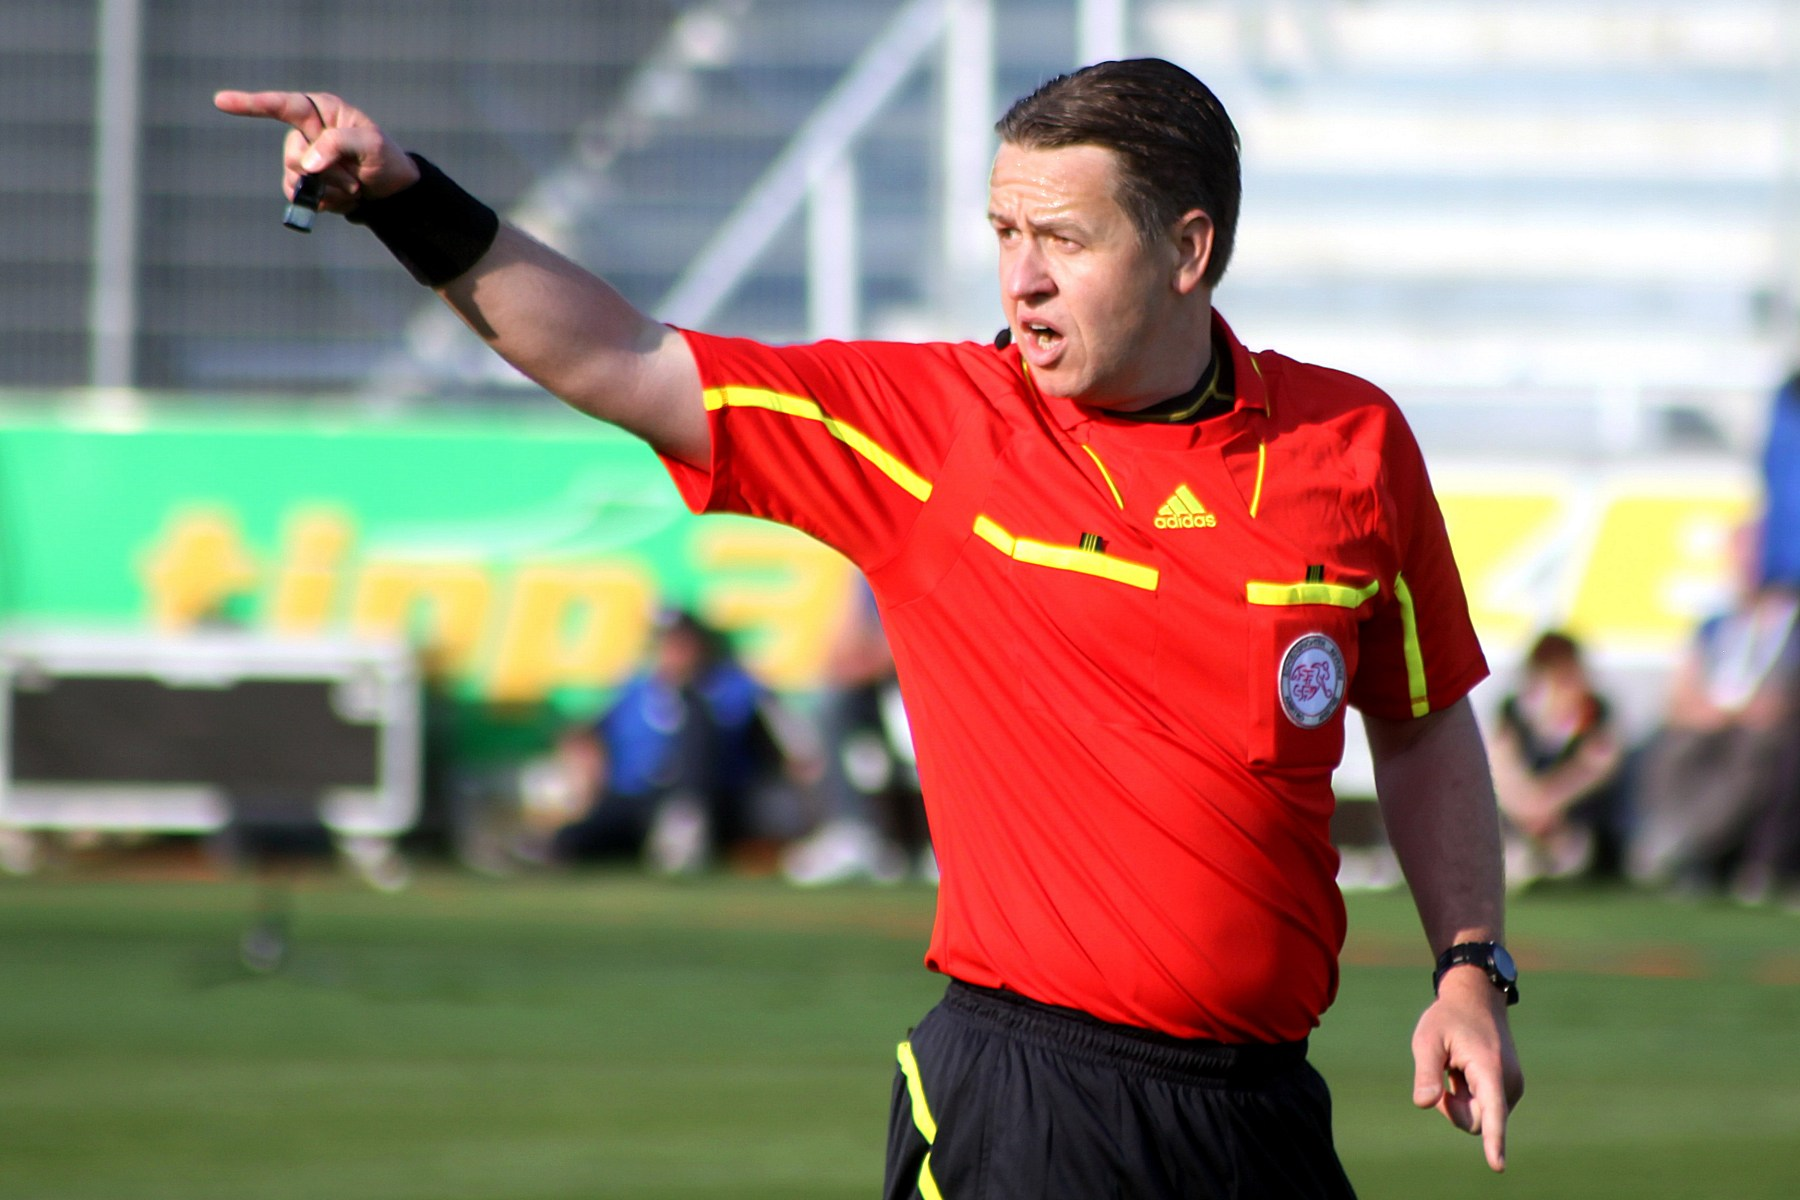 refereeing in action